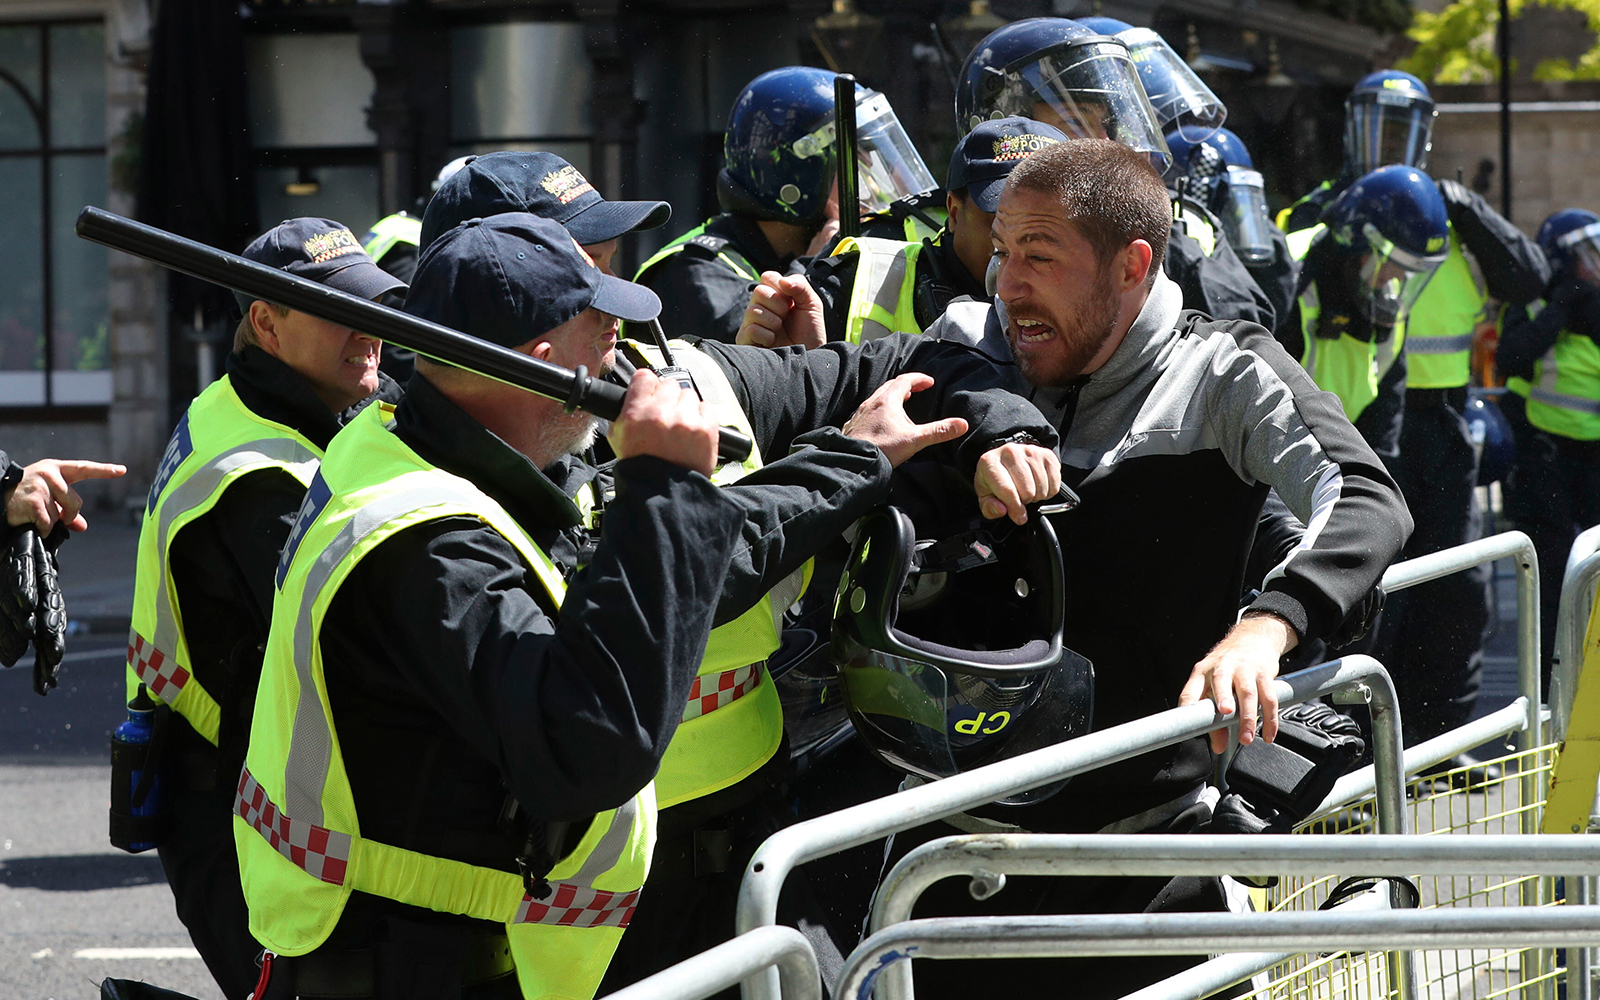 Over 100 people nabbed in violent protests in central London